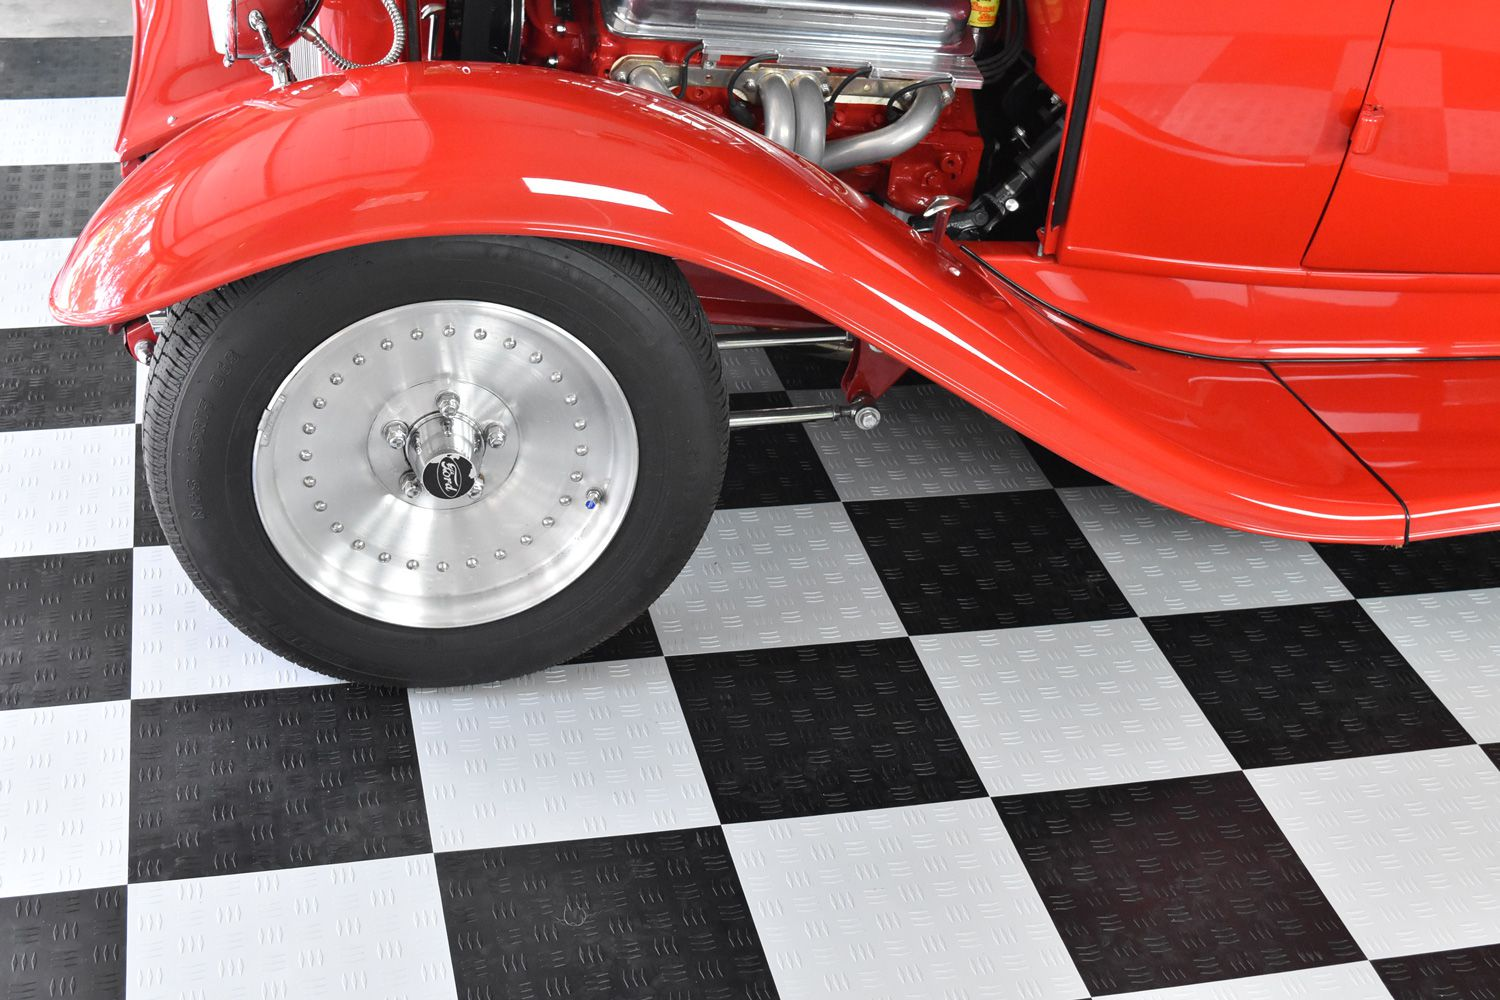 All About Garage Floor Mats And Choosing The Best